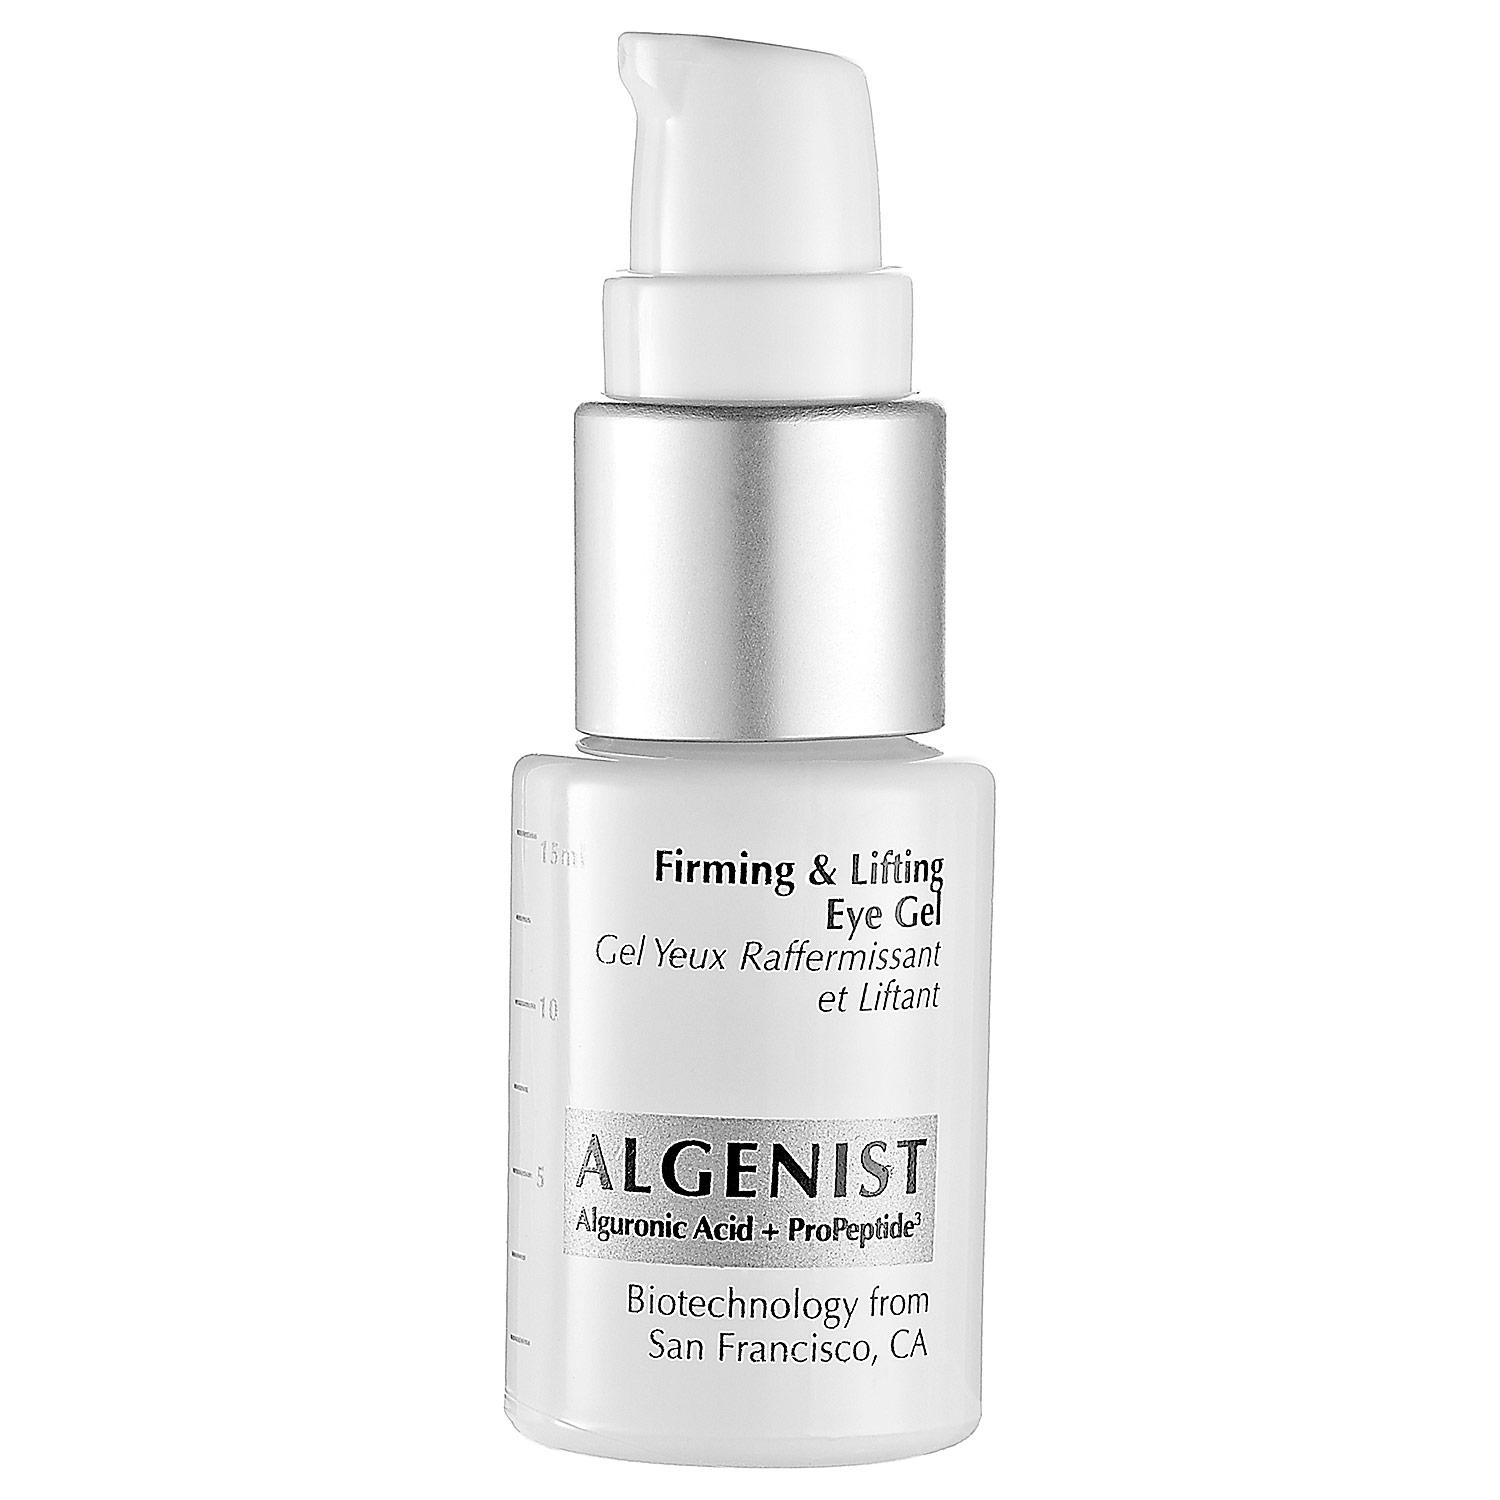 Firming & Lifting Eye Gel